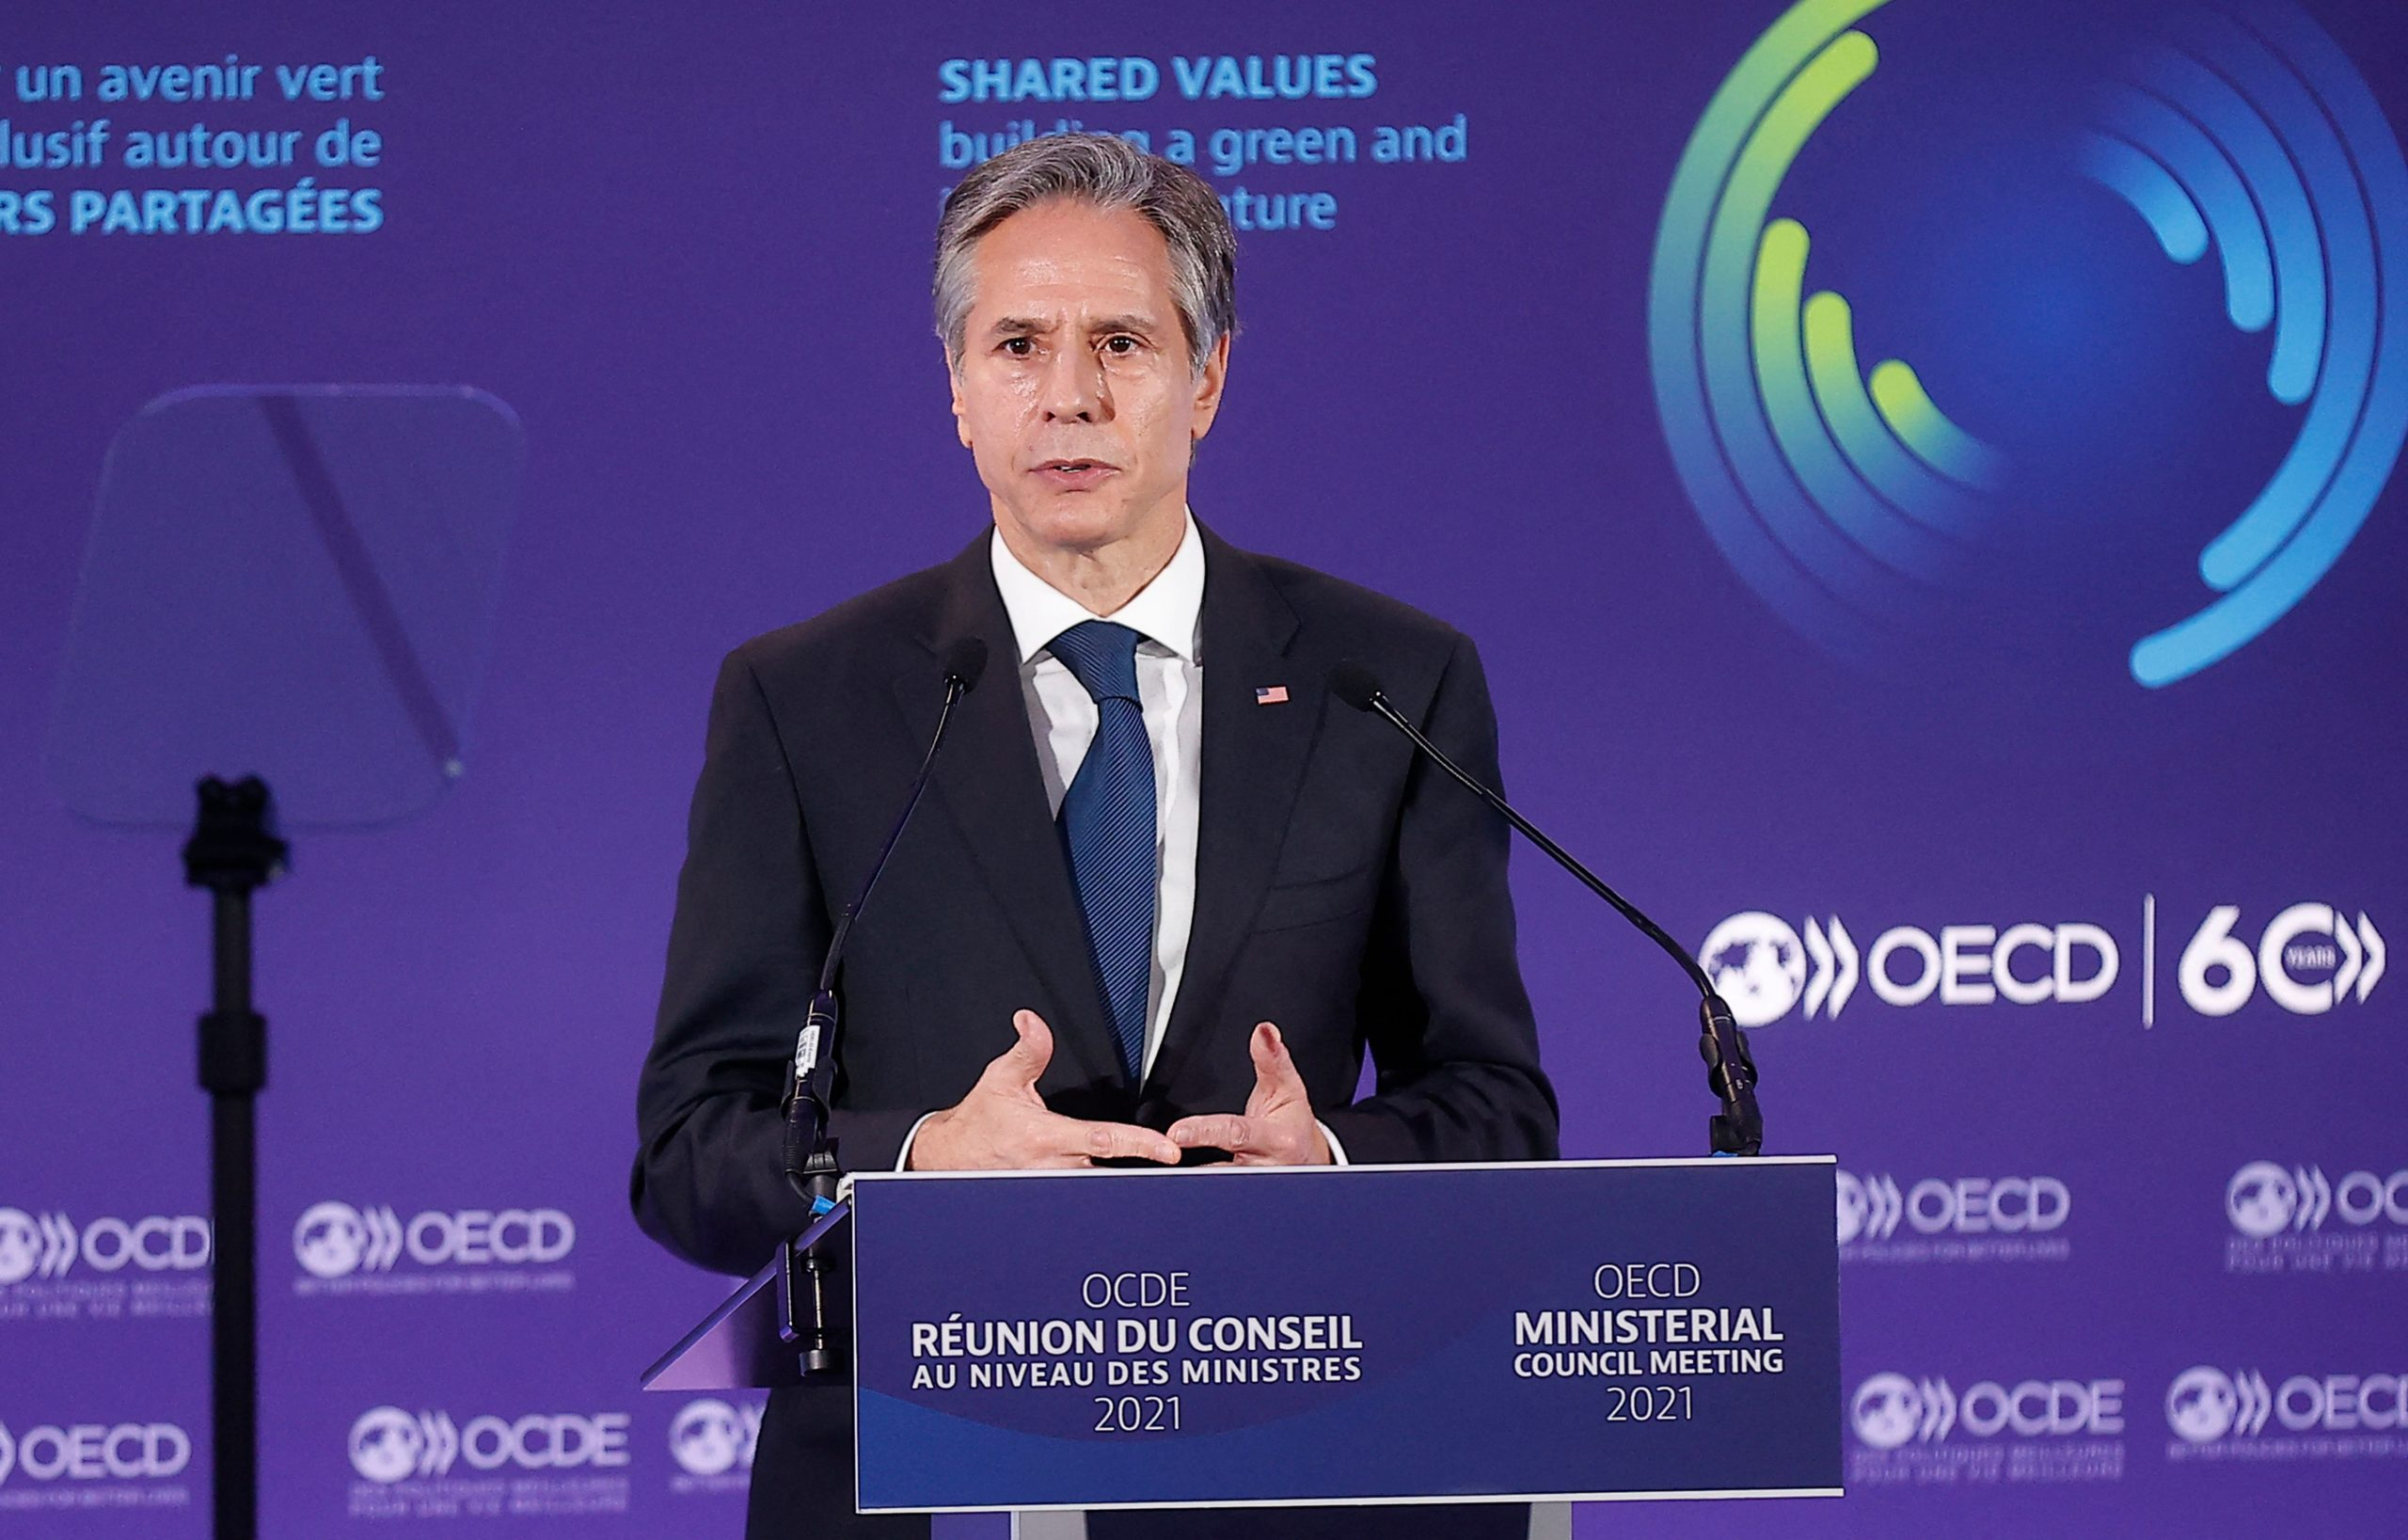 US Secretary of State Antony Blinken delivers an inaugural speech at the Organization for Economic Cooperation and Developments Ministerial Council Meeting in Paris on October 5, 2021. (Photo by IAN LANGSDON/POOL/AFP via Getty Images)